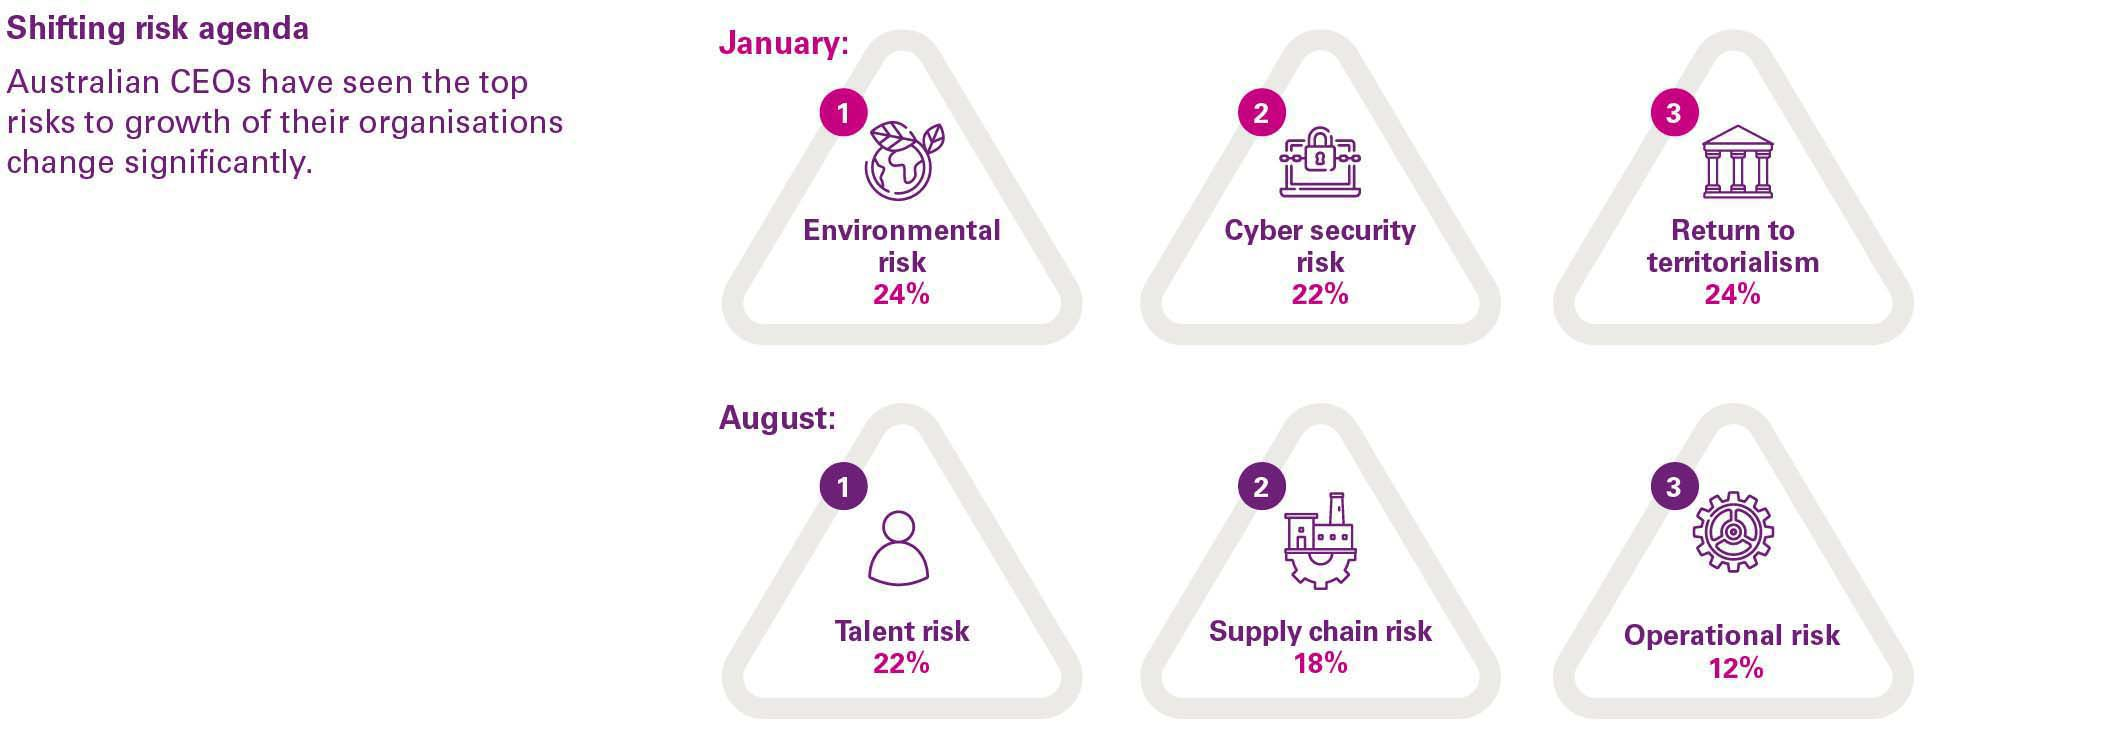 Global CEO Outlook 2020: Top risks to organisational growth prioritised by Australian CEOs infographic